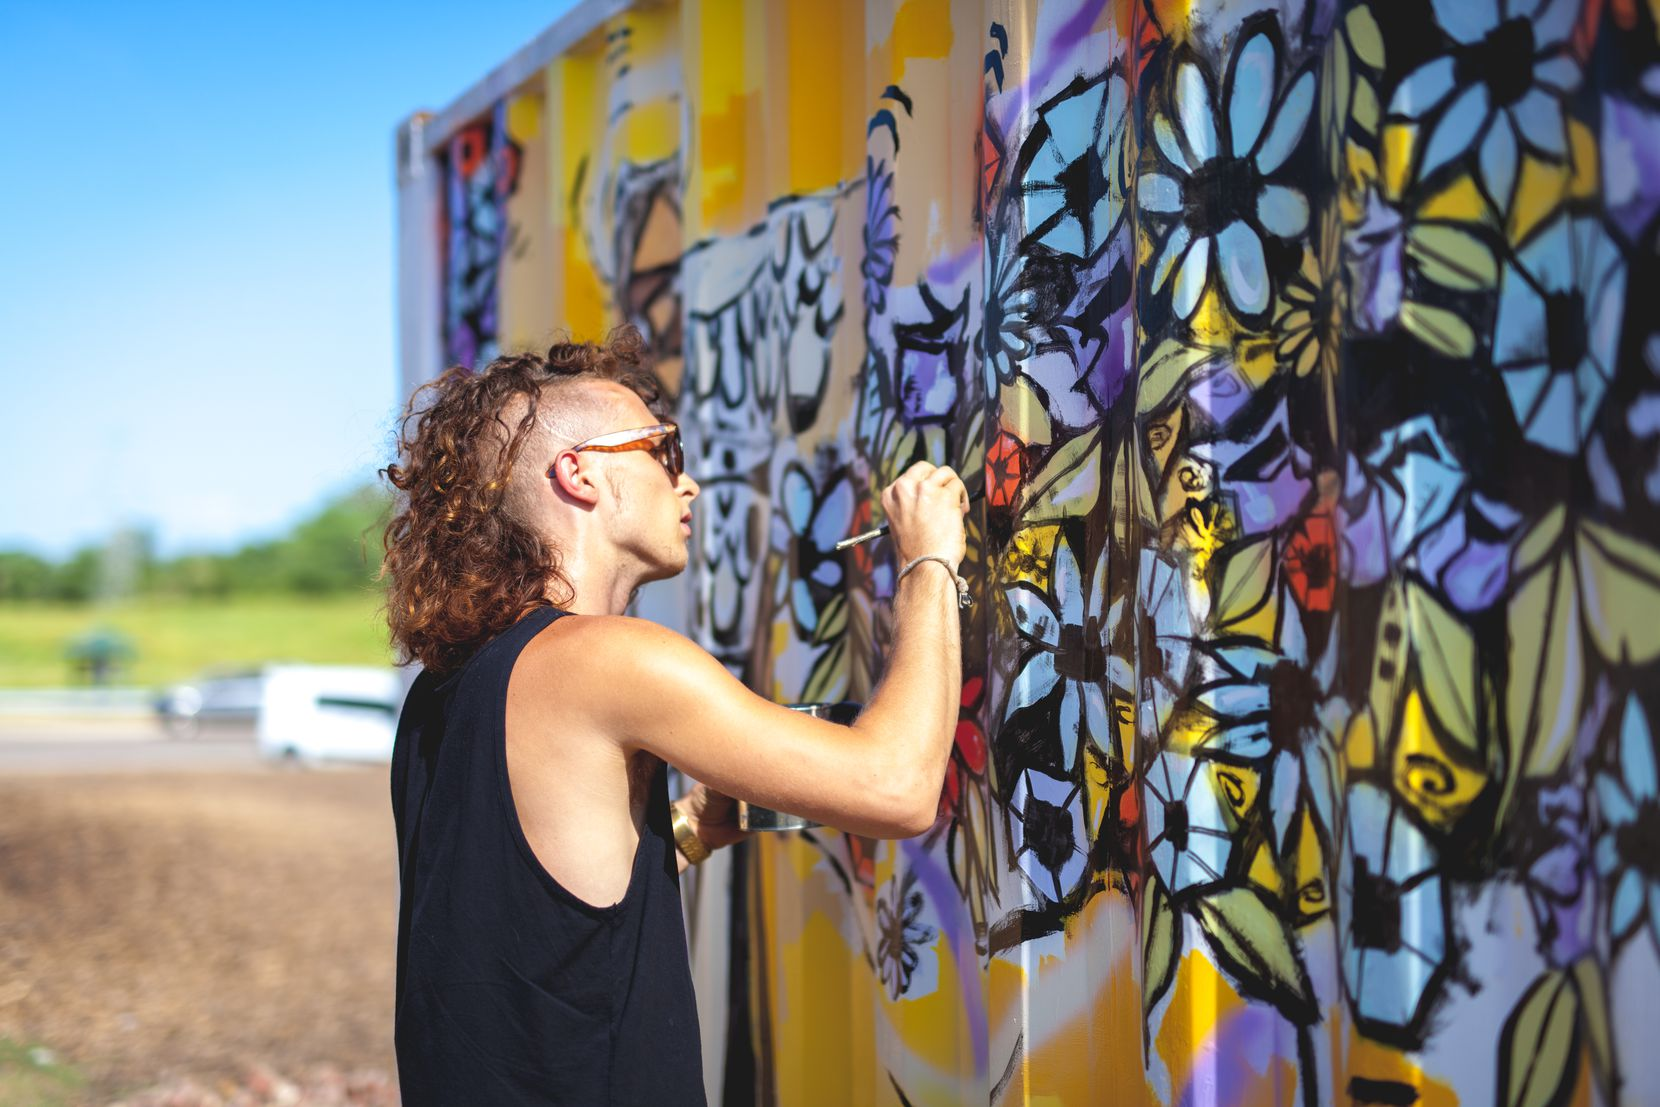 """Brinston paints his mural """"Bonton Blessing"""" at Bonton Farms in South Dallas. The mural is one of the first that will cover a white fence surrounding the property."""